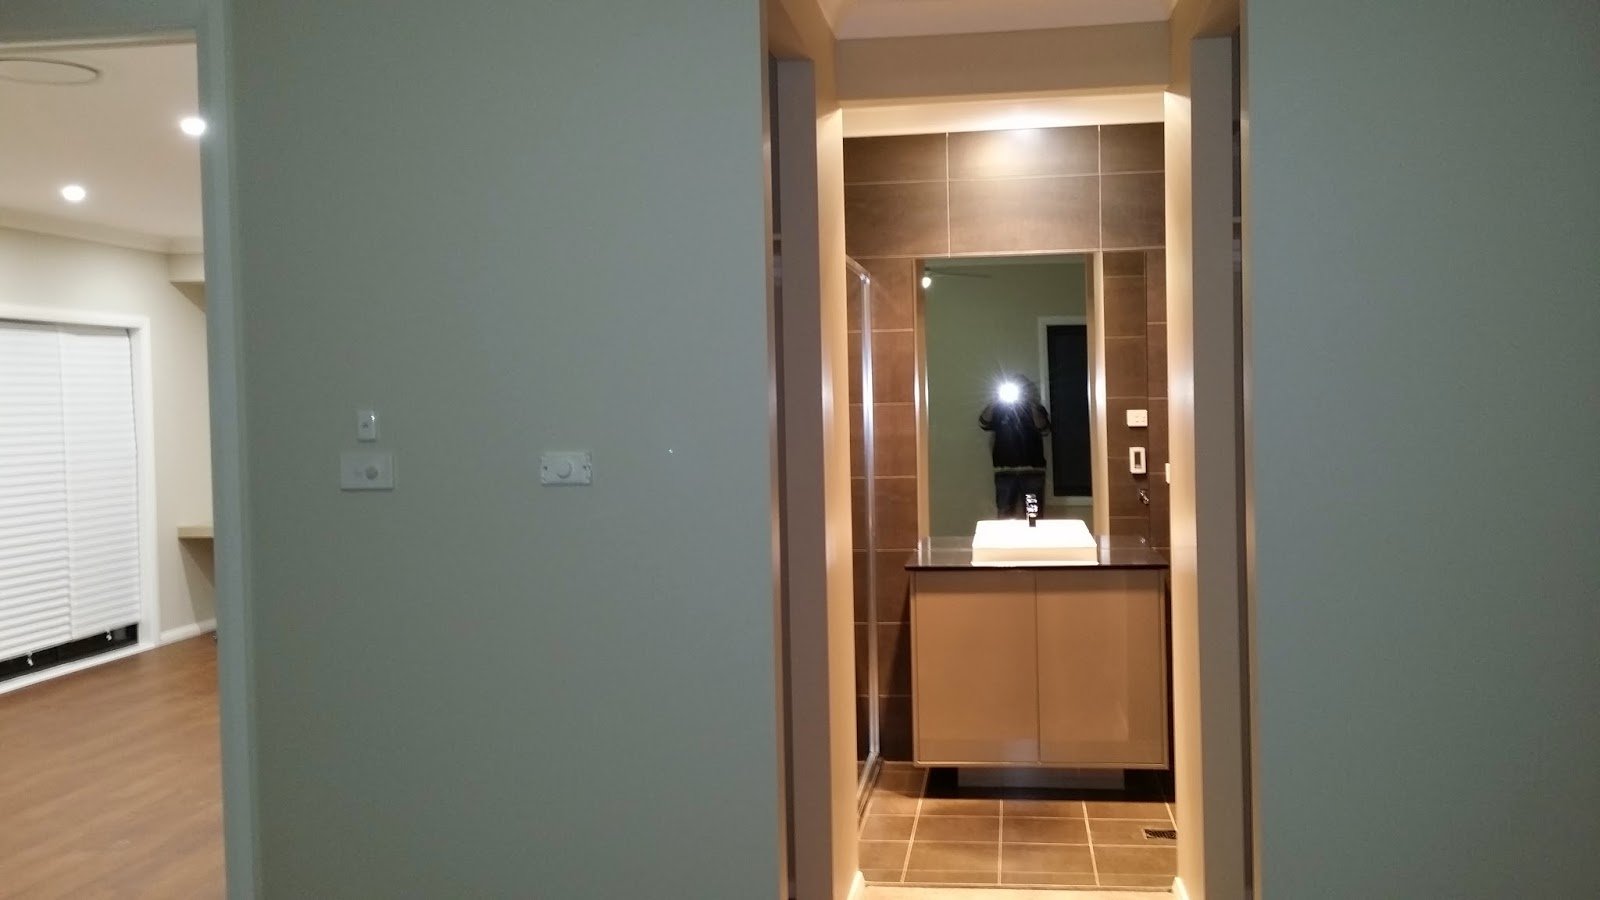 view into the master suites ensuite bathroom